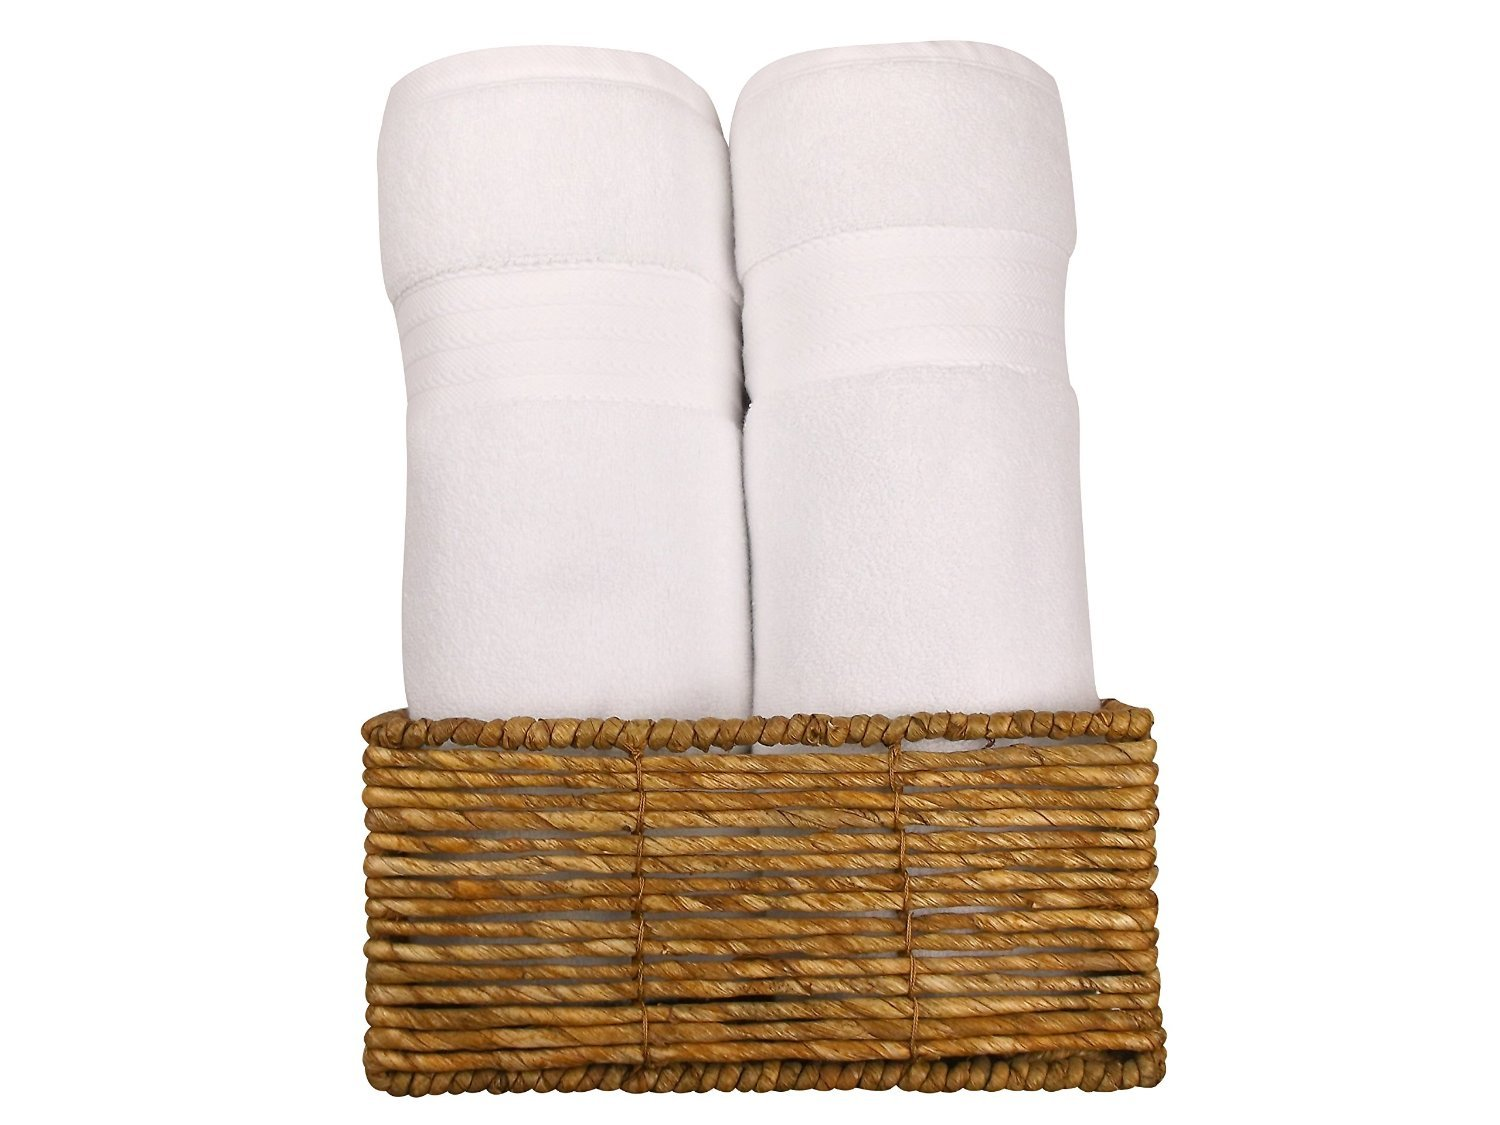 Luxury Hotel & Spa Bath Towels-65% Cotton & 35% Bamboo Set of 2, White